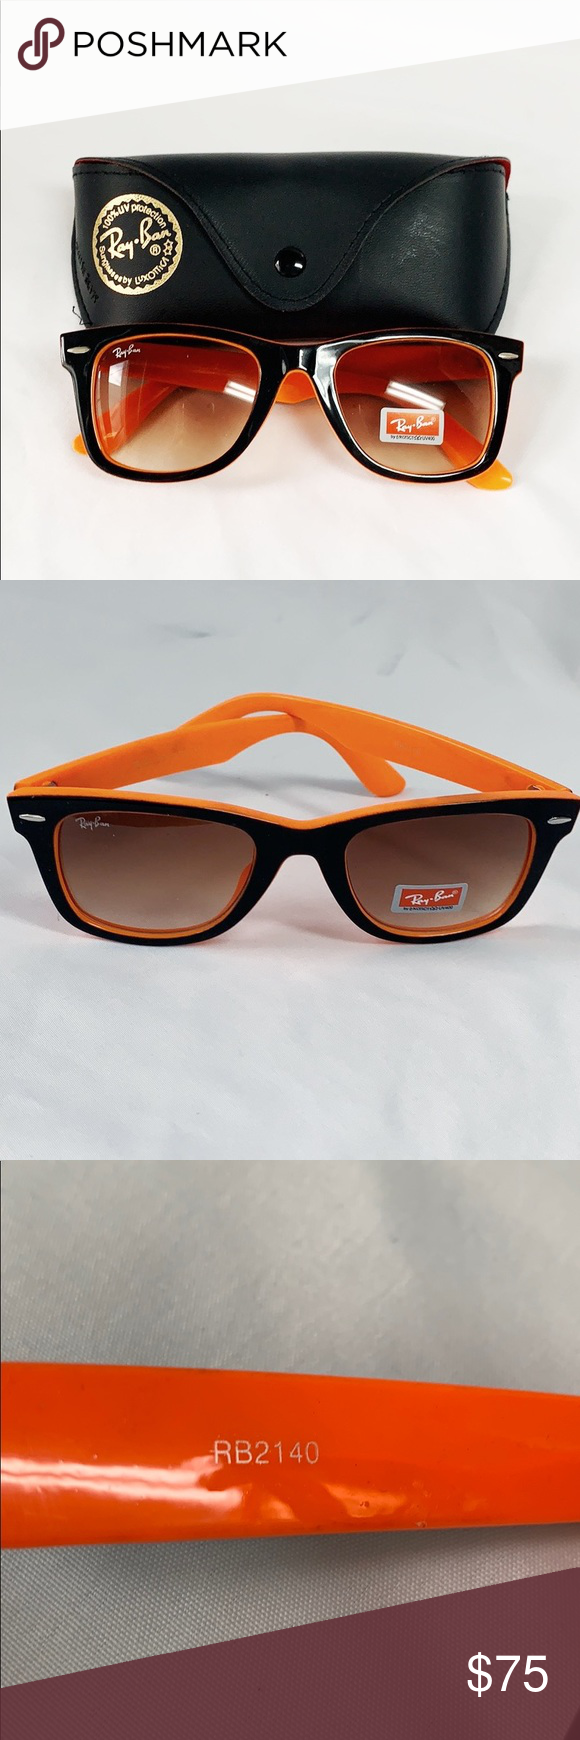 Ray Ban Rb2140 Orange Black Sunglasses New Ray Ban Rb2140 Sunglasses Uv 400 Orange And Black With Brown Tone Lens In 2020 Black Sunglasses Sunglasses Orange Black